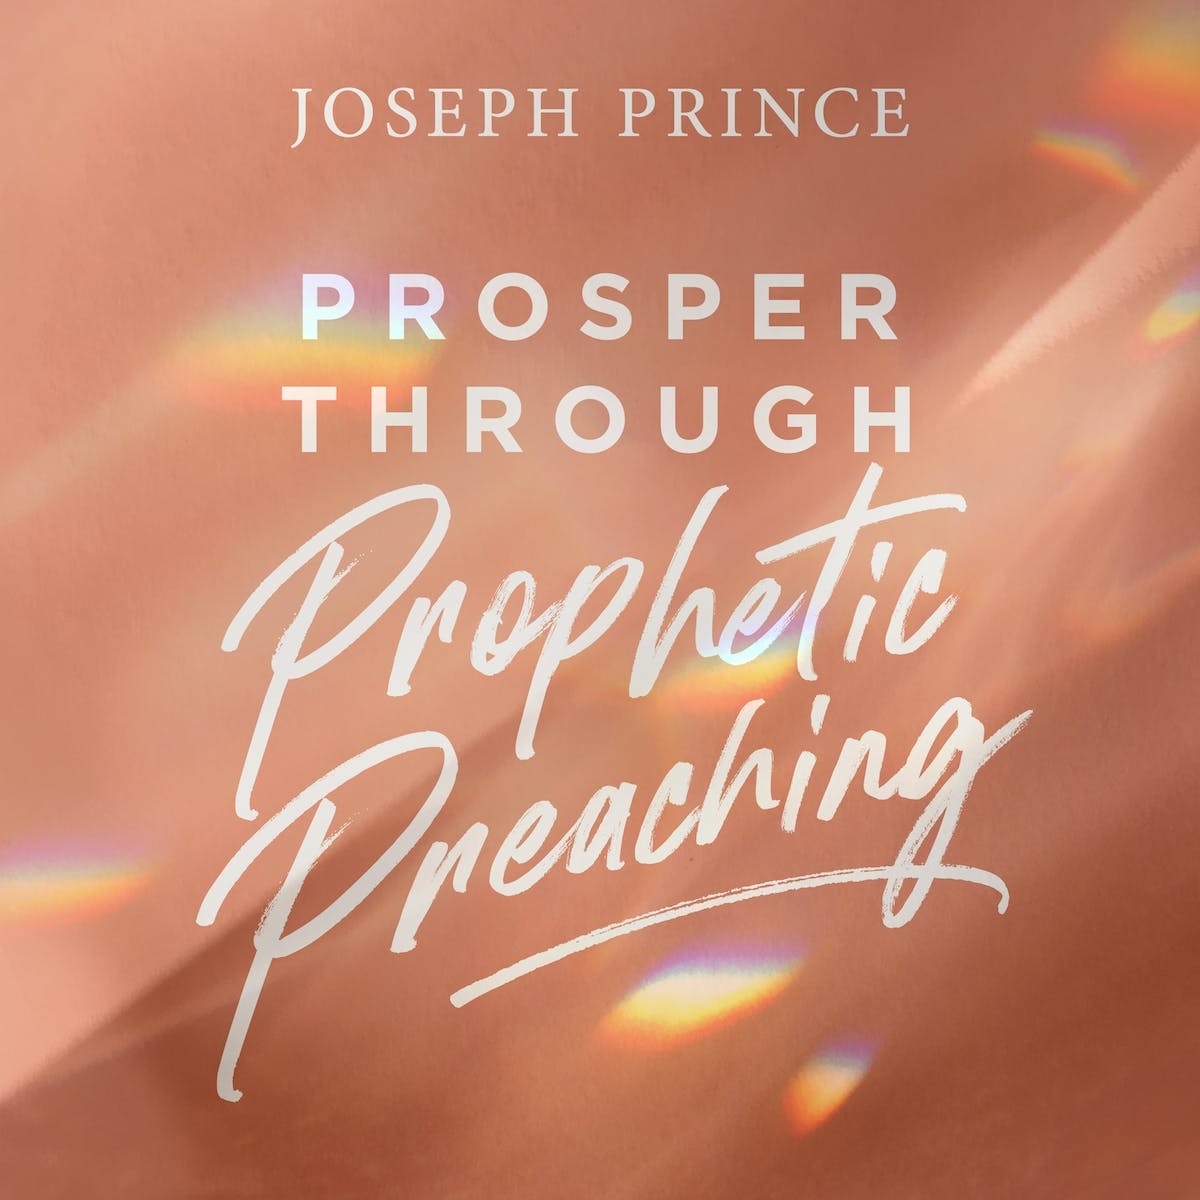 Prosper Through Prophetic Preaching | Official Joseph Prince